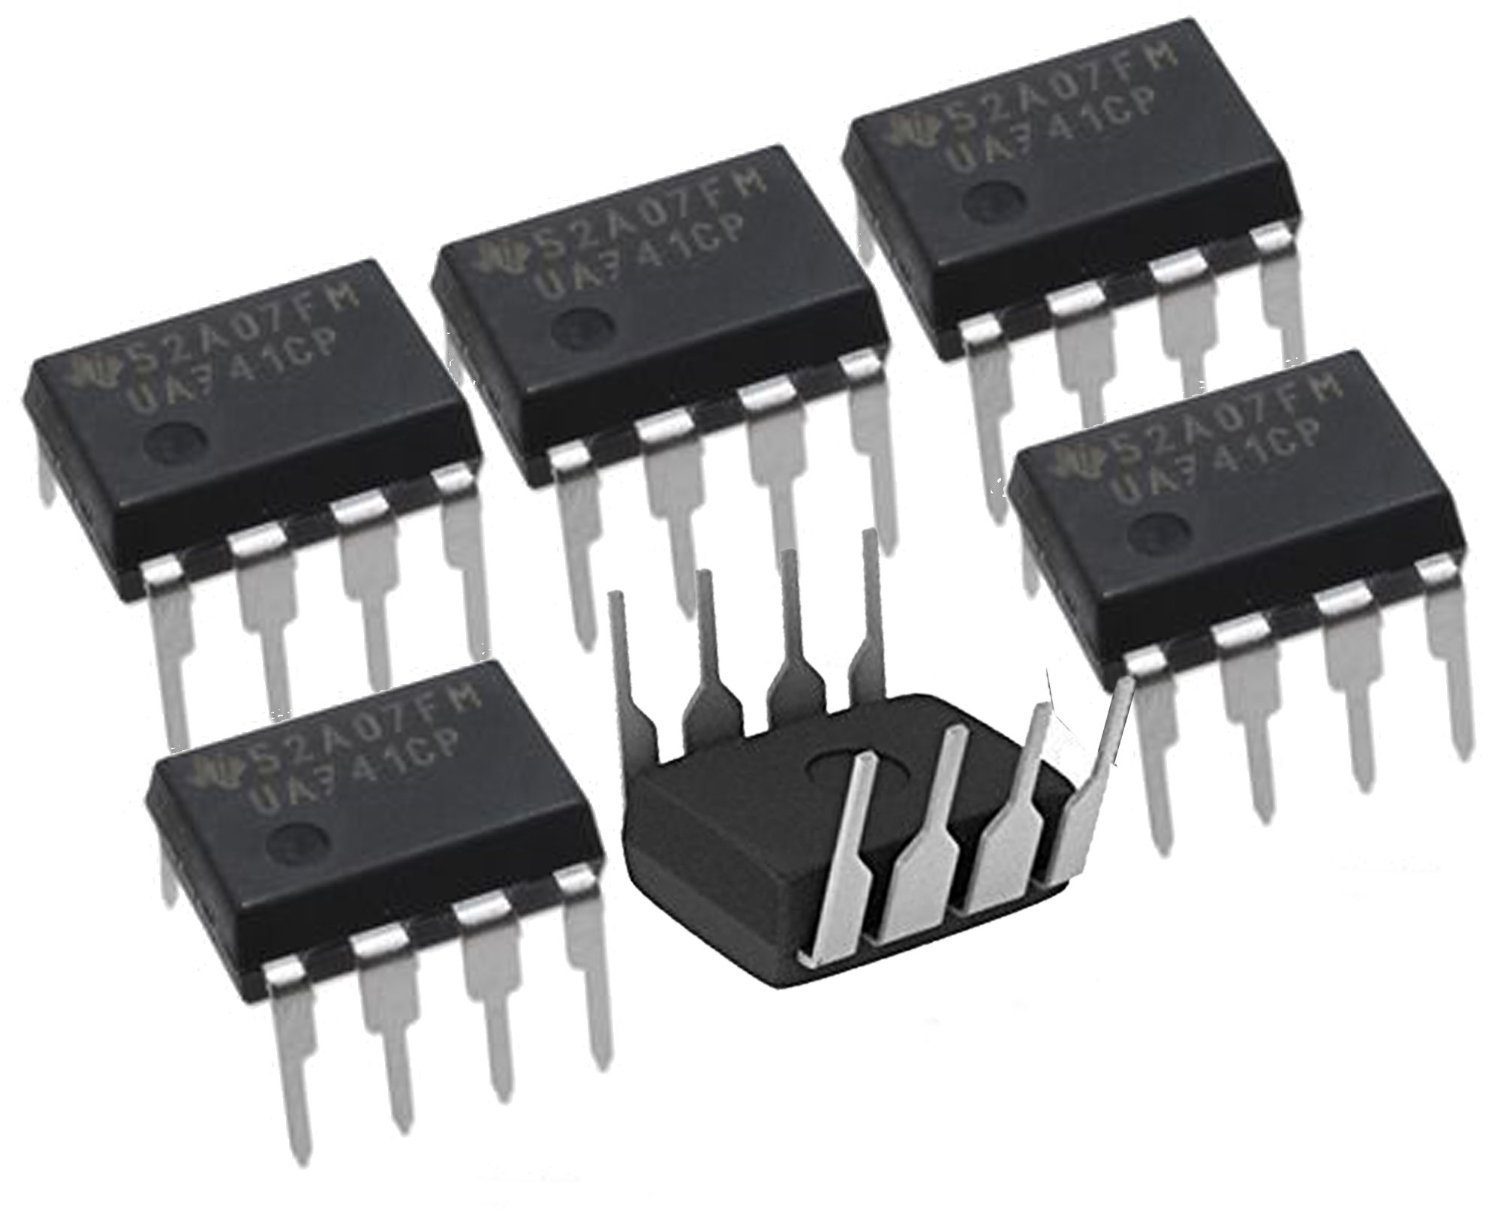 Texas Instruments 6 Pieces Ua741cp Ic Opamp Gp The 741 Is A Common General Purpose Operational Amplifier 1mhz Sgl Lp 8dip Ua741 Linear Amplifiers Instrumentation